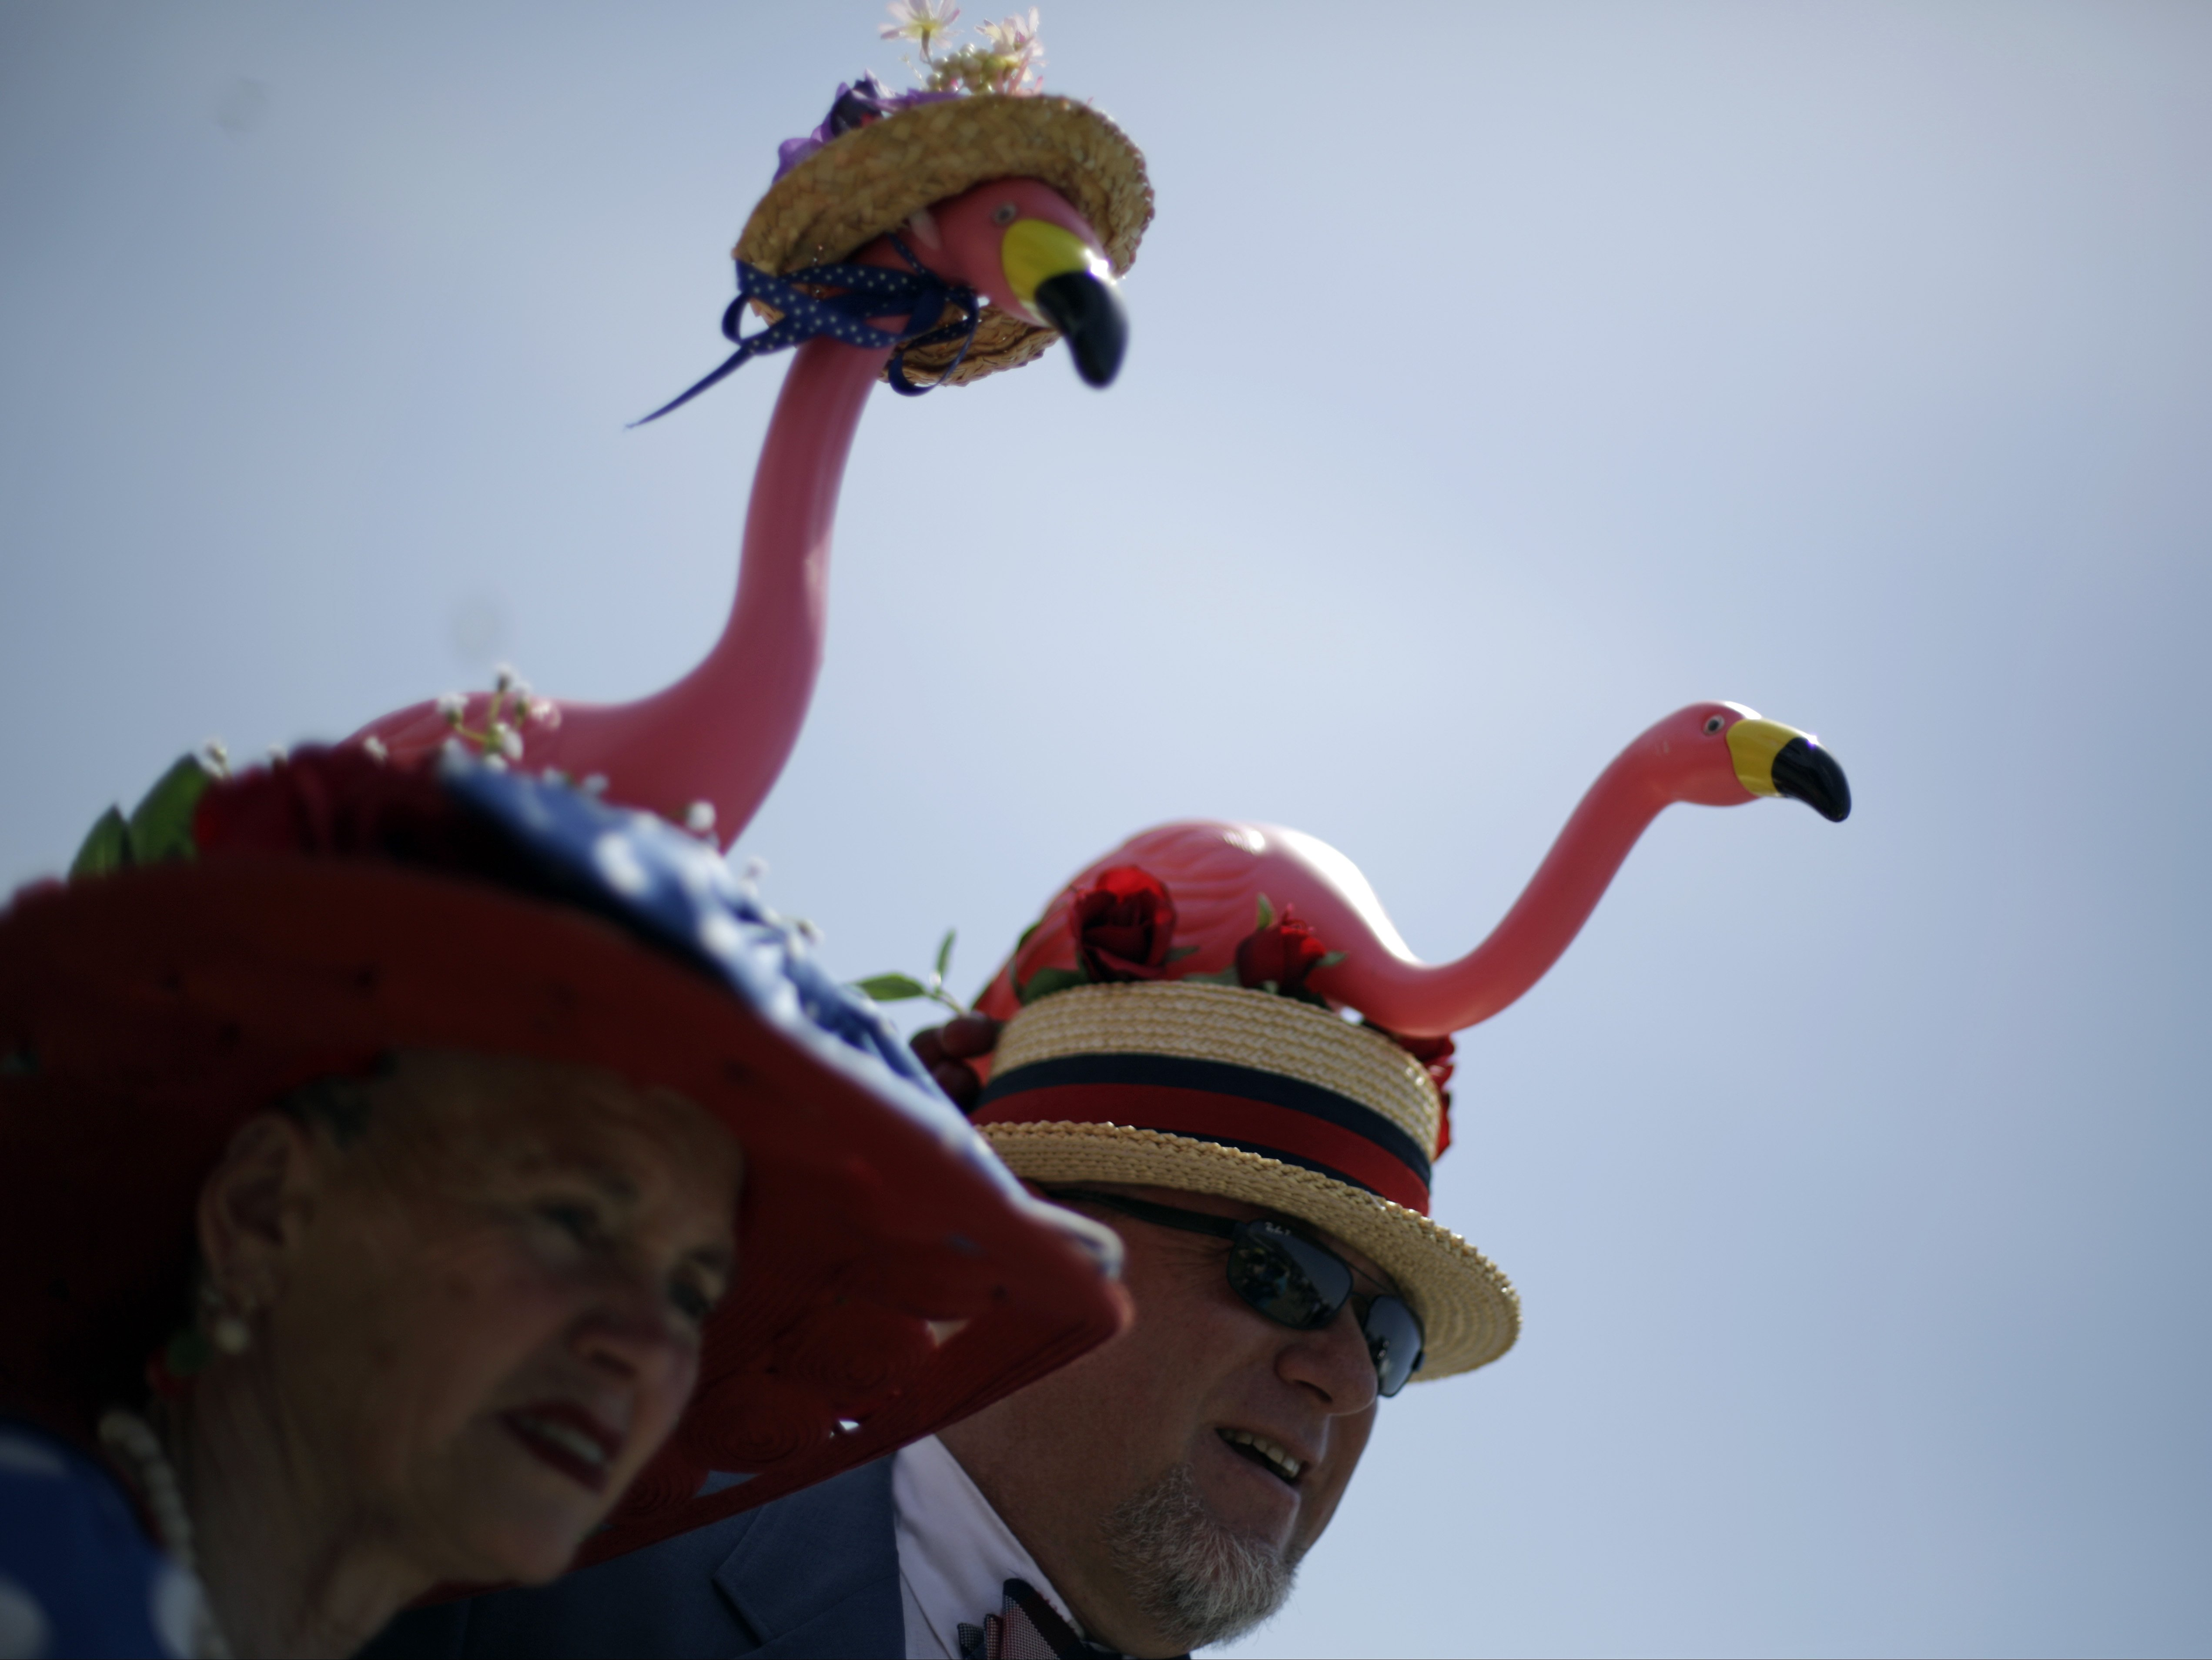 Scott and Jan Baty of Traverse City, Mich., in matching flamingo hats.